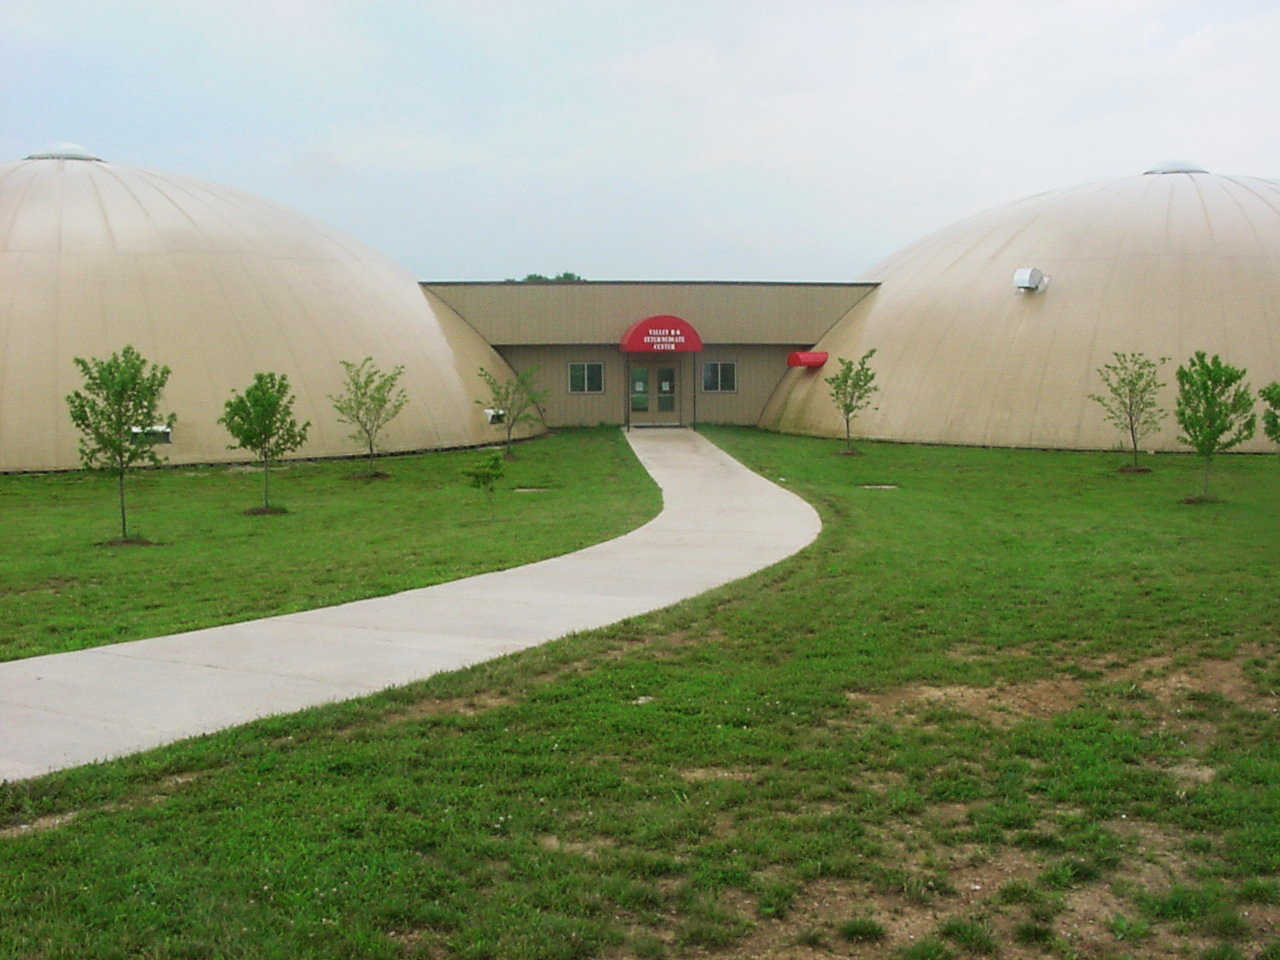 Monolithic Domes in Caledonia, Missouri — Voters approved a bond for construction of three Monolithic Domes, two to house classrooms for grades 3 through 6 and one as a gym.